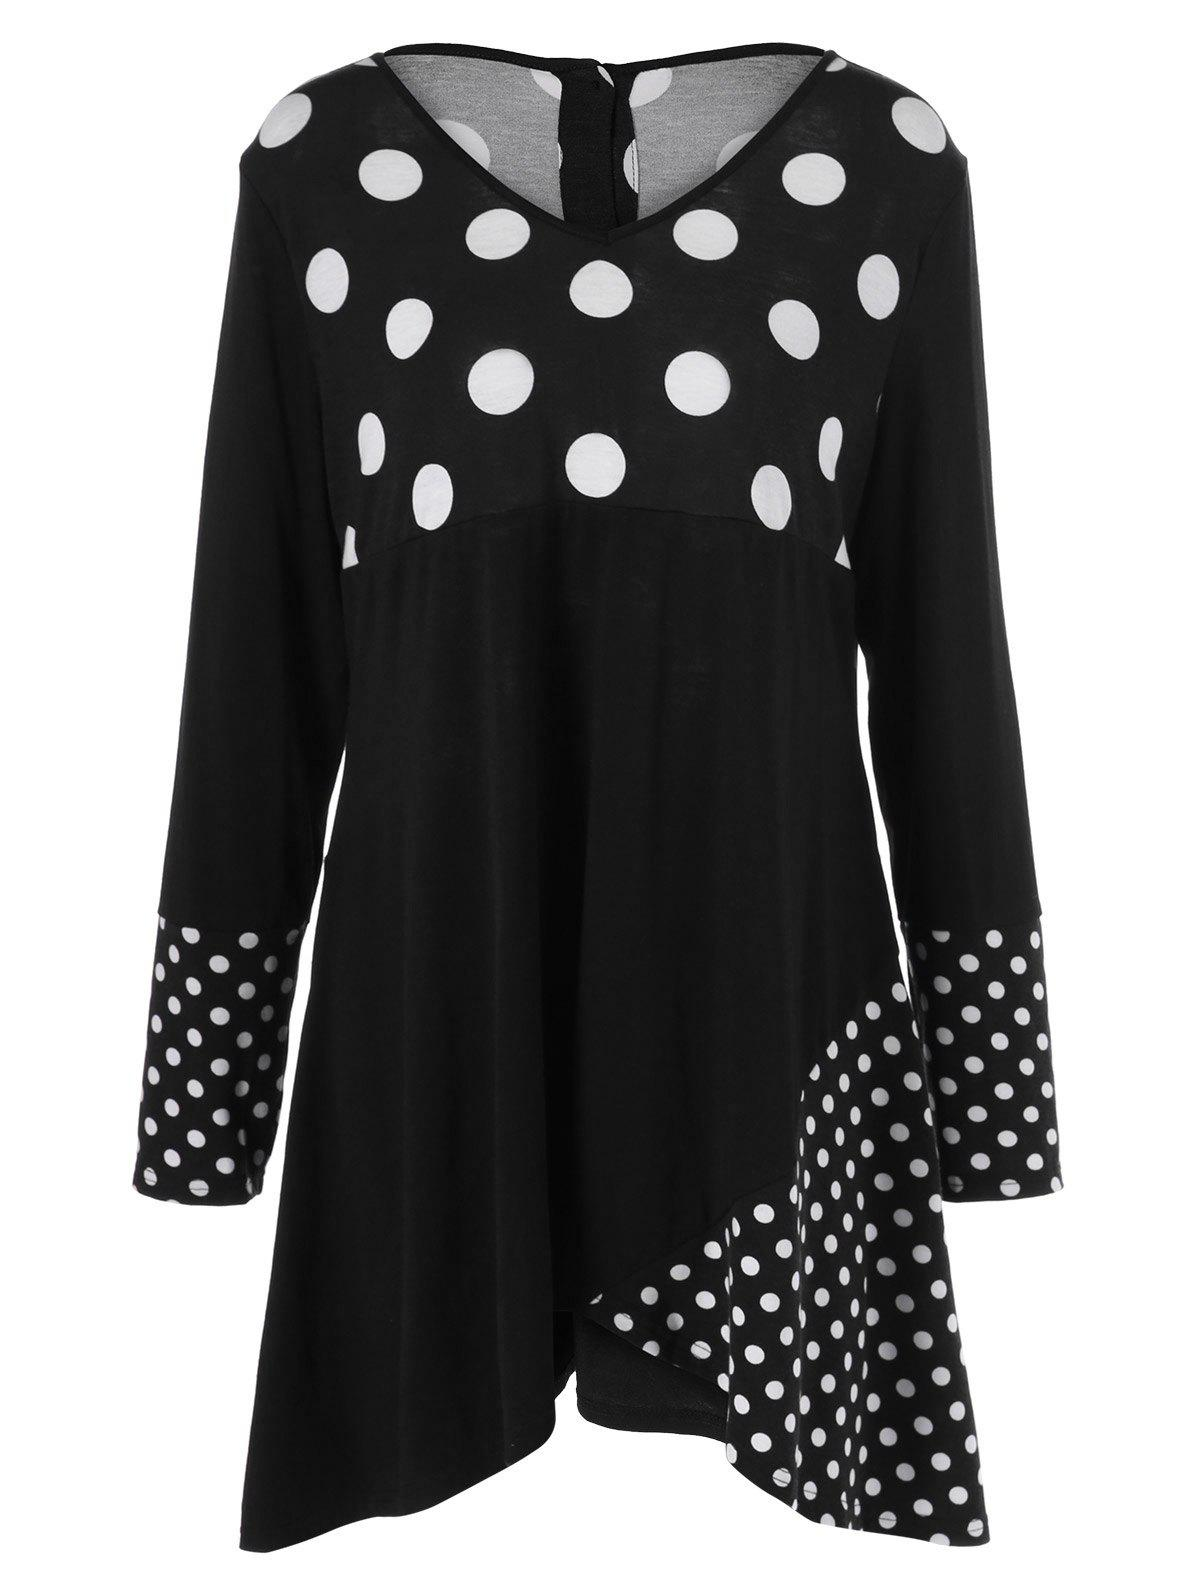 Plus Size Polka Dot Trim Asymmetrical DressWOMEN<br><br>Size: 4XL; Color: WHITE AND BLACK; Style: Brief; Material: Polyester,Spandex; Silhouette: Asymmetrical; Dresses Length: Knee-Length; Neckline: V-Neck; Sleeve Length: Long Sleeves; Pattern Type: Polka Dot; With Belt: No; Season: Fall,Spring; Weight: 0.420kg; Package Contents: 1 x Dress;